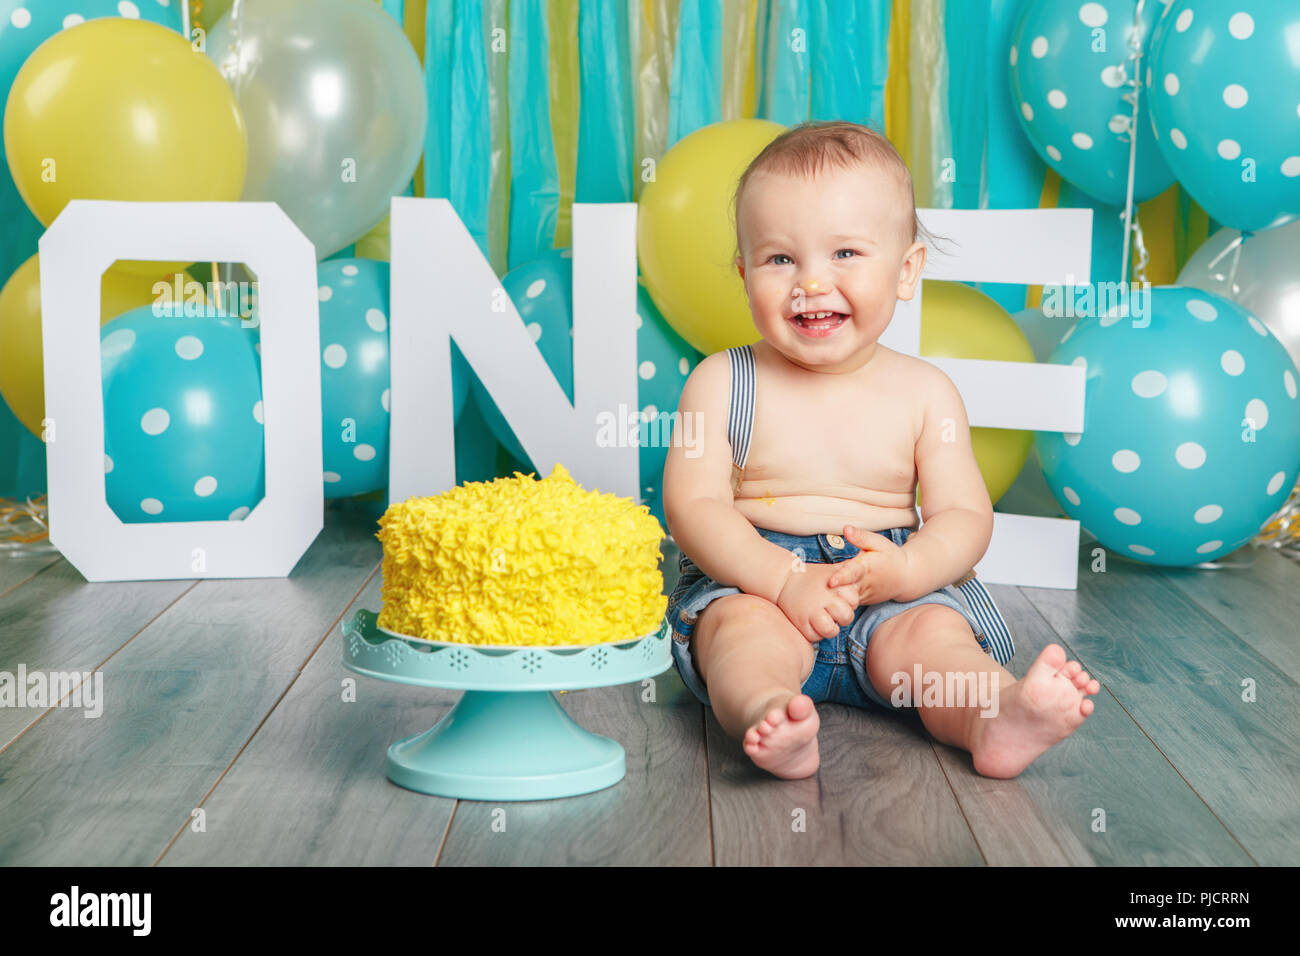 Portrait Of Cute Adorable Caucasian Baby Boy In Jeans Pants Celebrating His First Birthday Cake Smash Concept Child Kid Sitting On Floor In Studio E Stock Photo Alamy